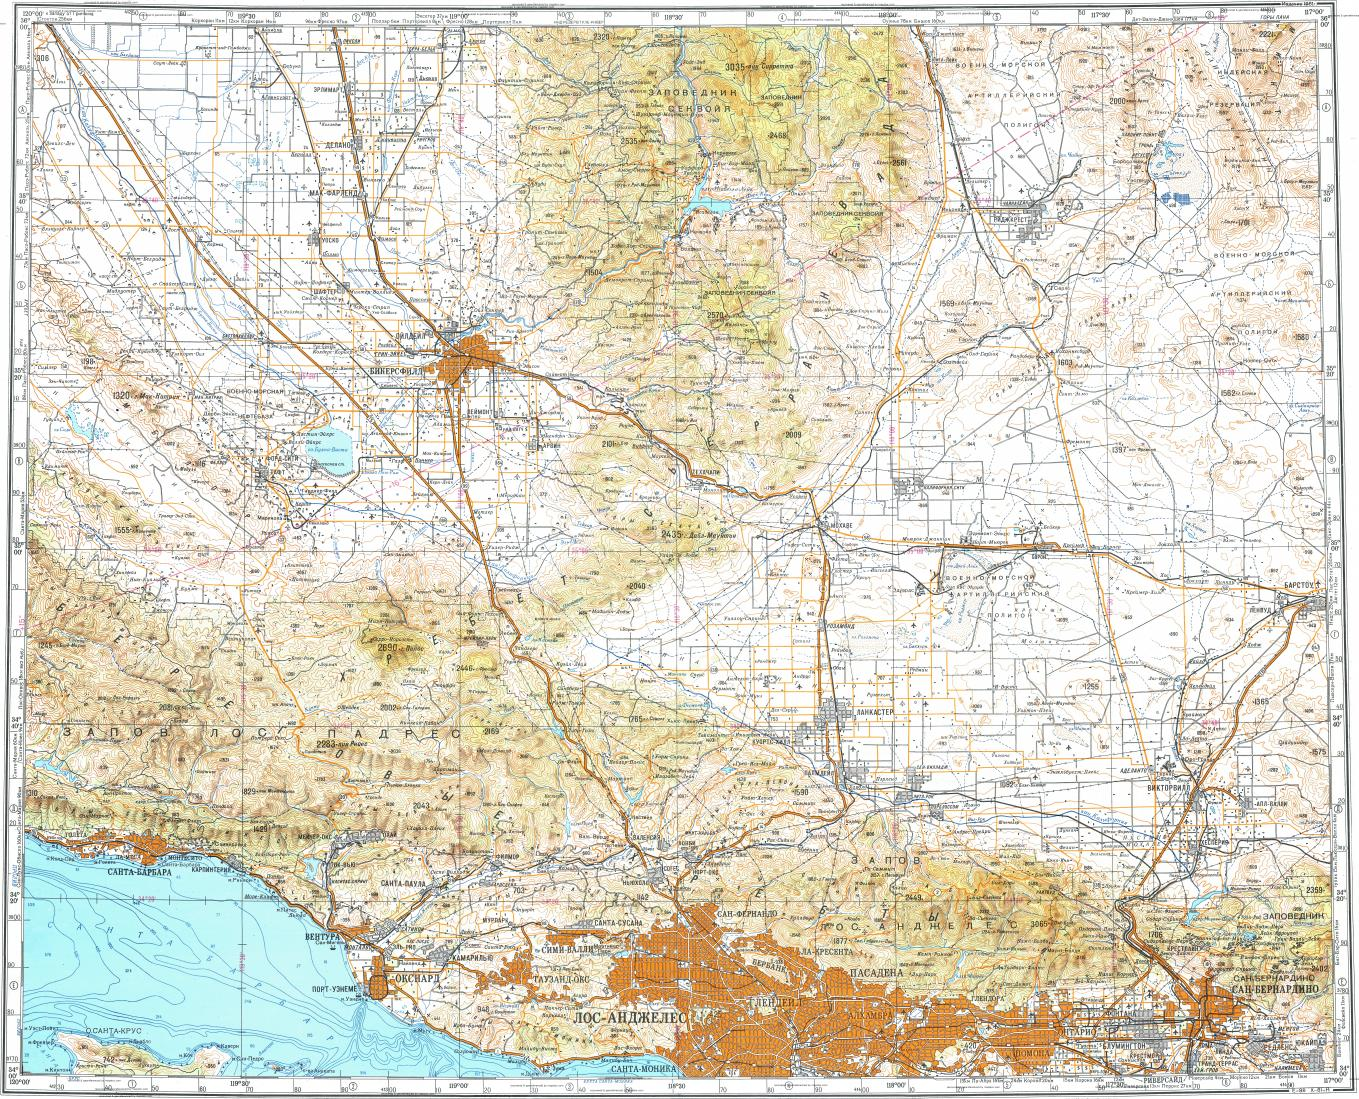 Download Topographic Map In Area Of Los Angeles Bakersfield - Los angeles map download